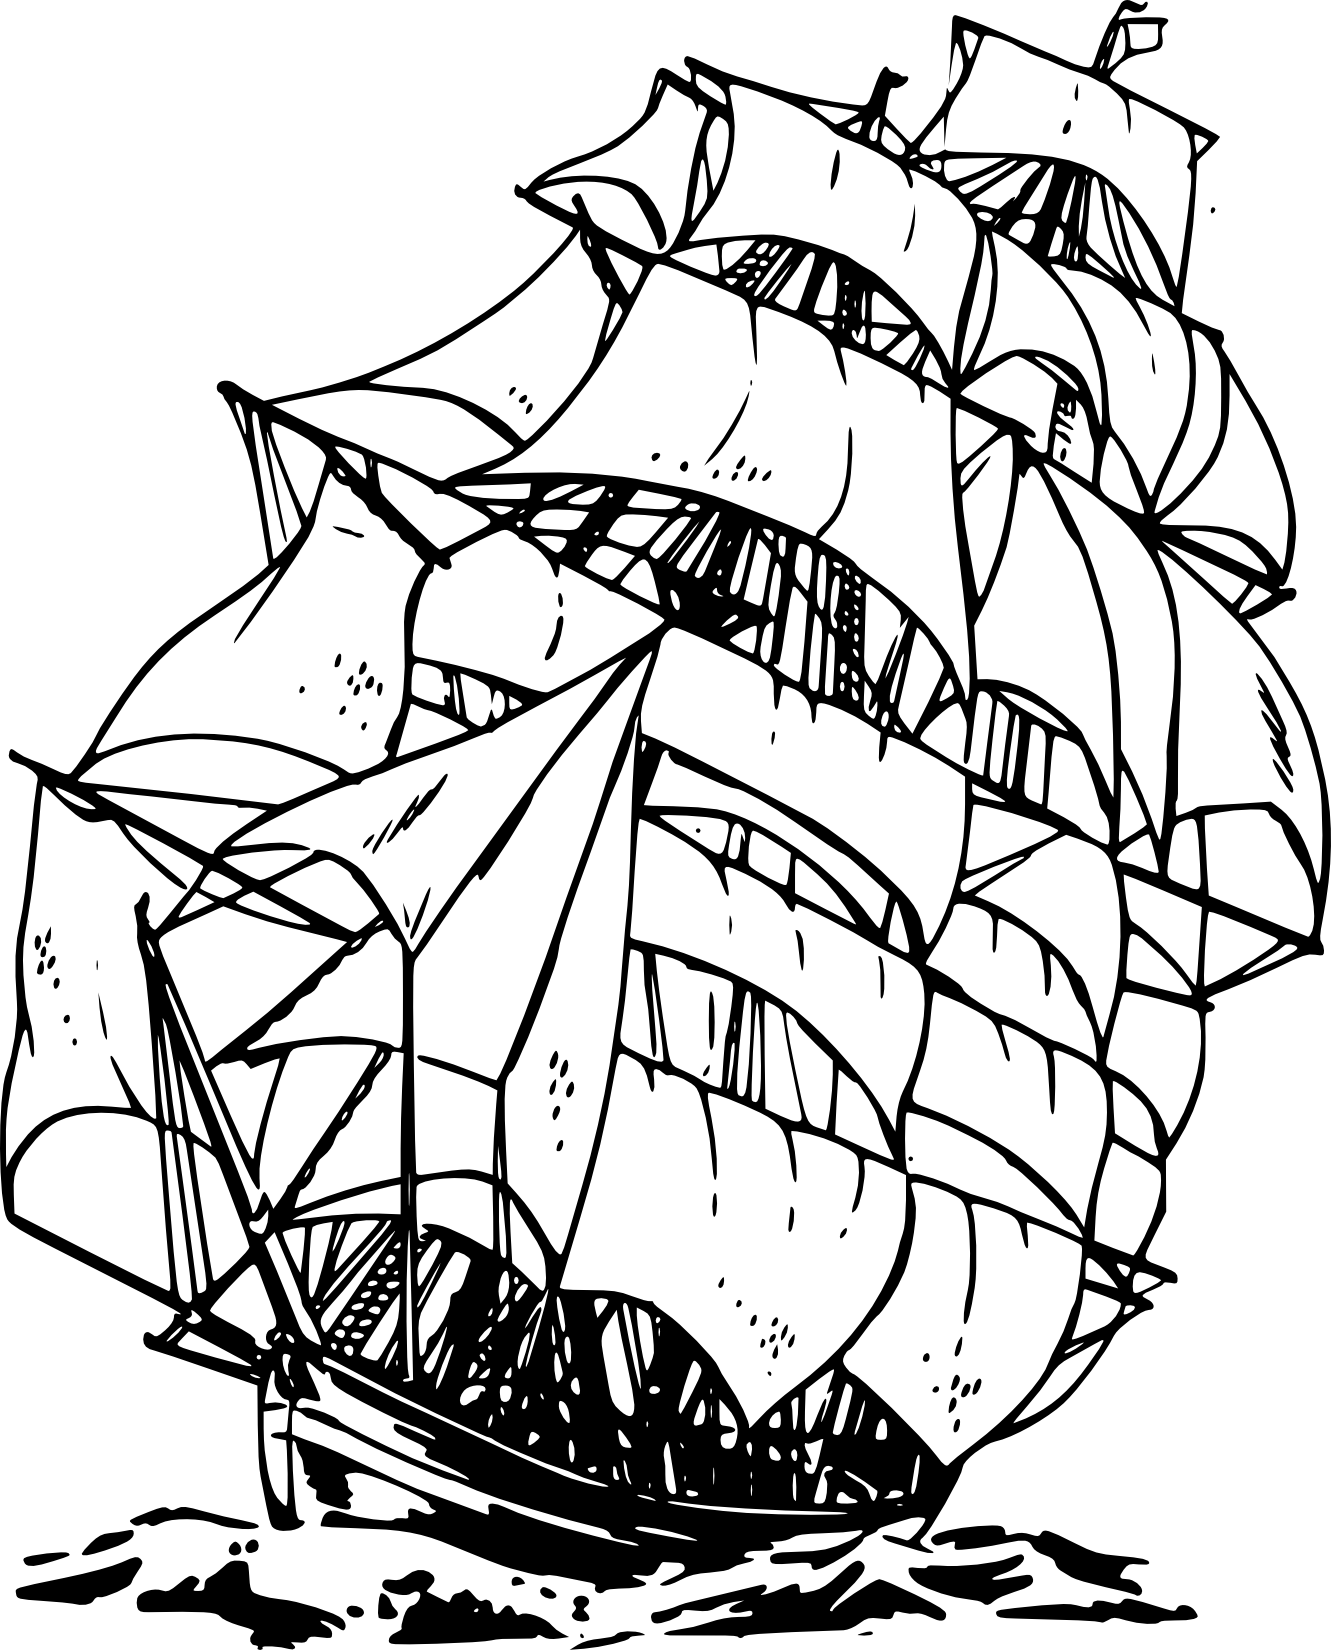 Pirate Ship Clipart Black And White   Clipart Panda   Free Clipart